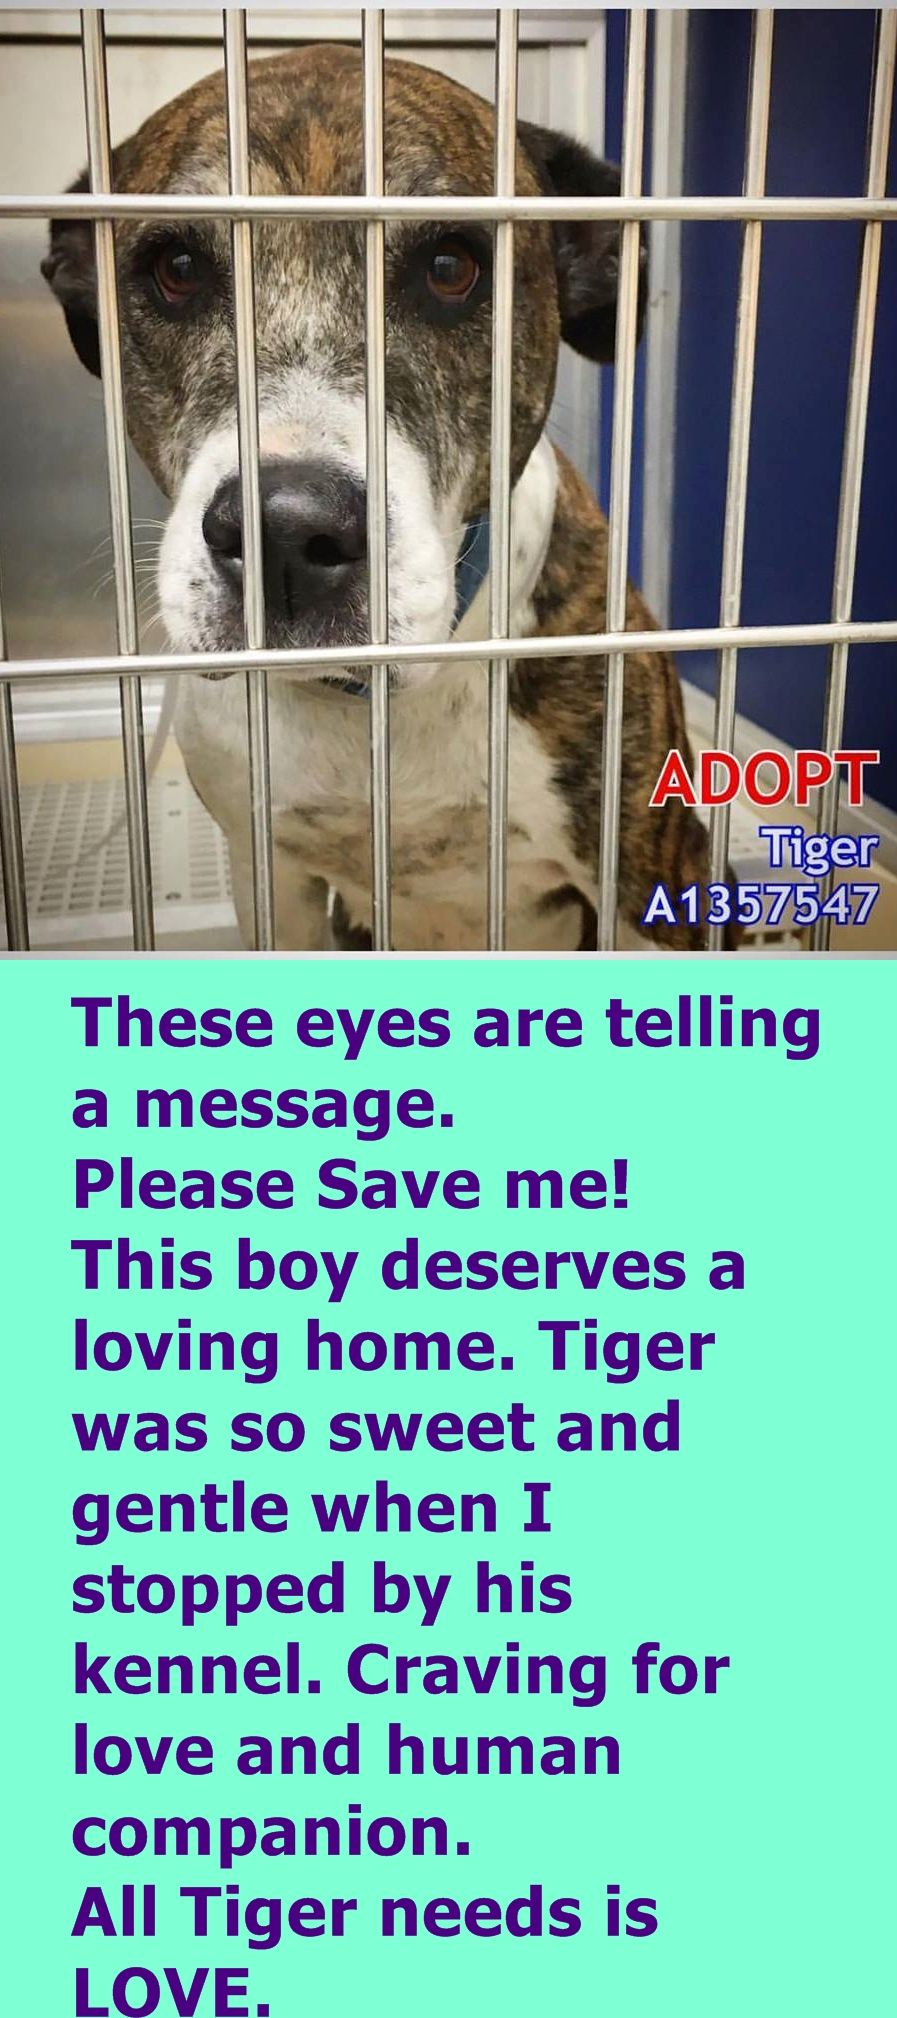 Tiger A1357547 Is About 7 Years Old Terrier Mix Box Neutered He Has Been At The Shelter Since Aug 11 2016 Stray Located Pitbull Terrier Shelter Dogs Dogs